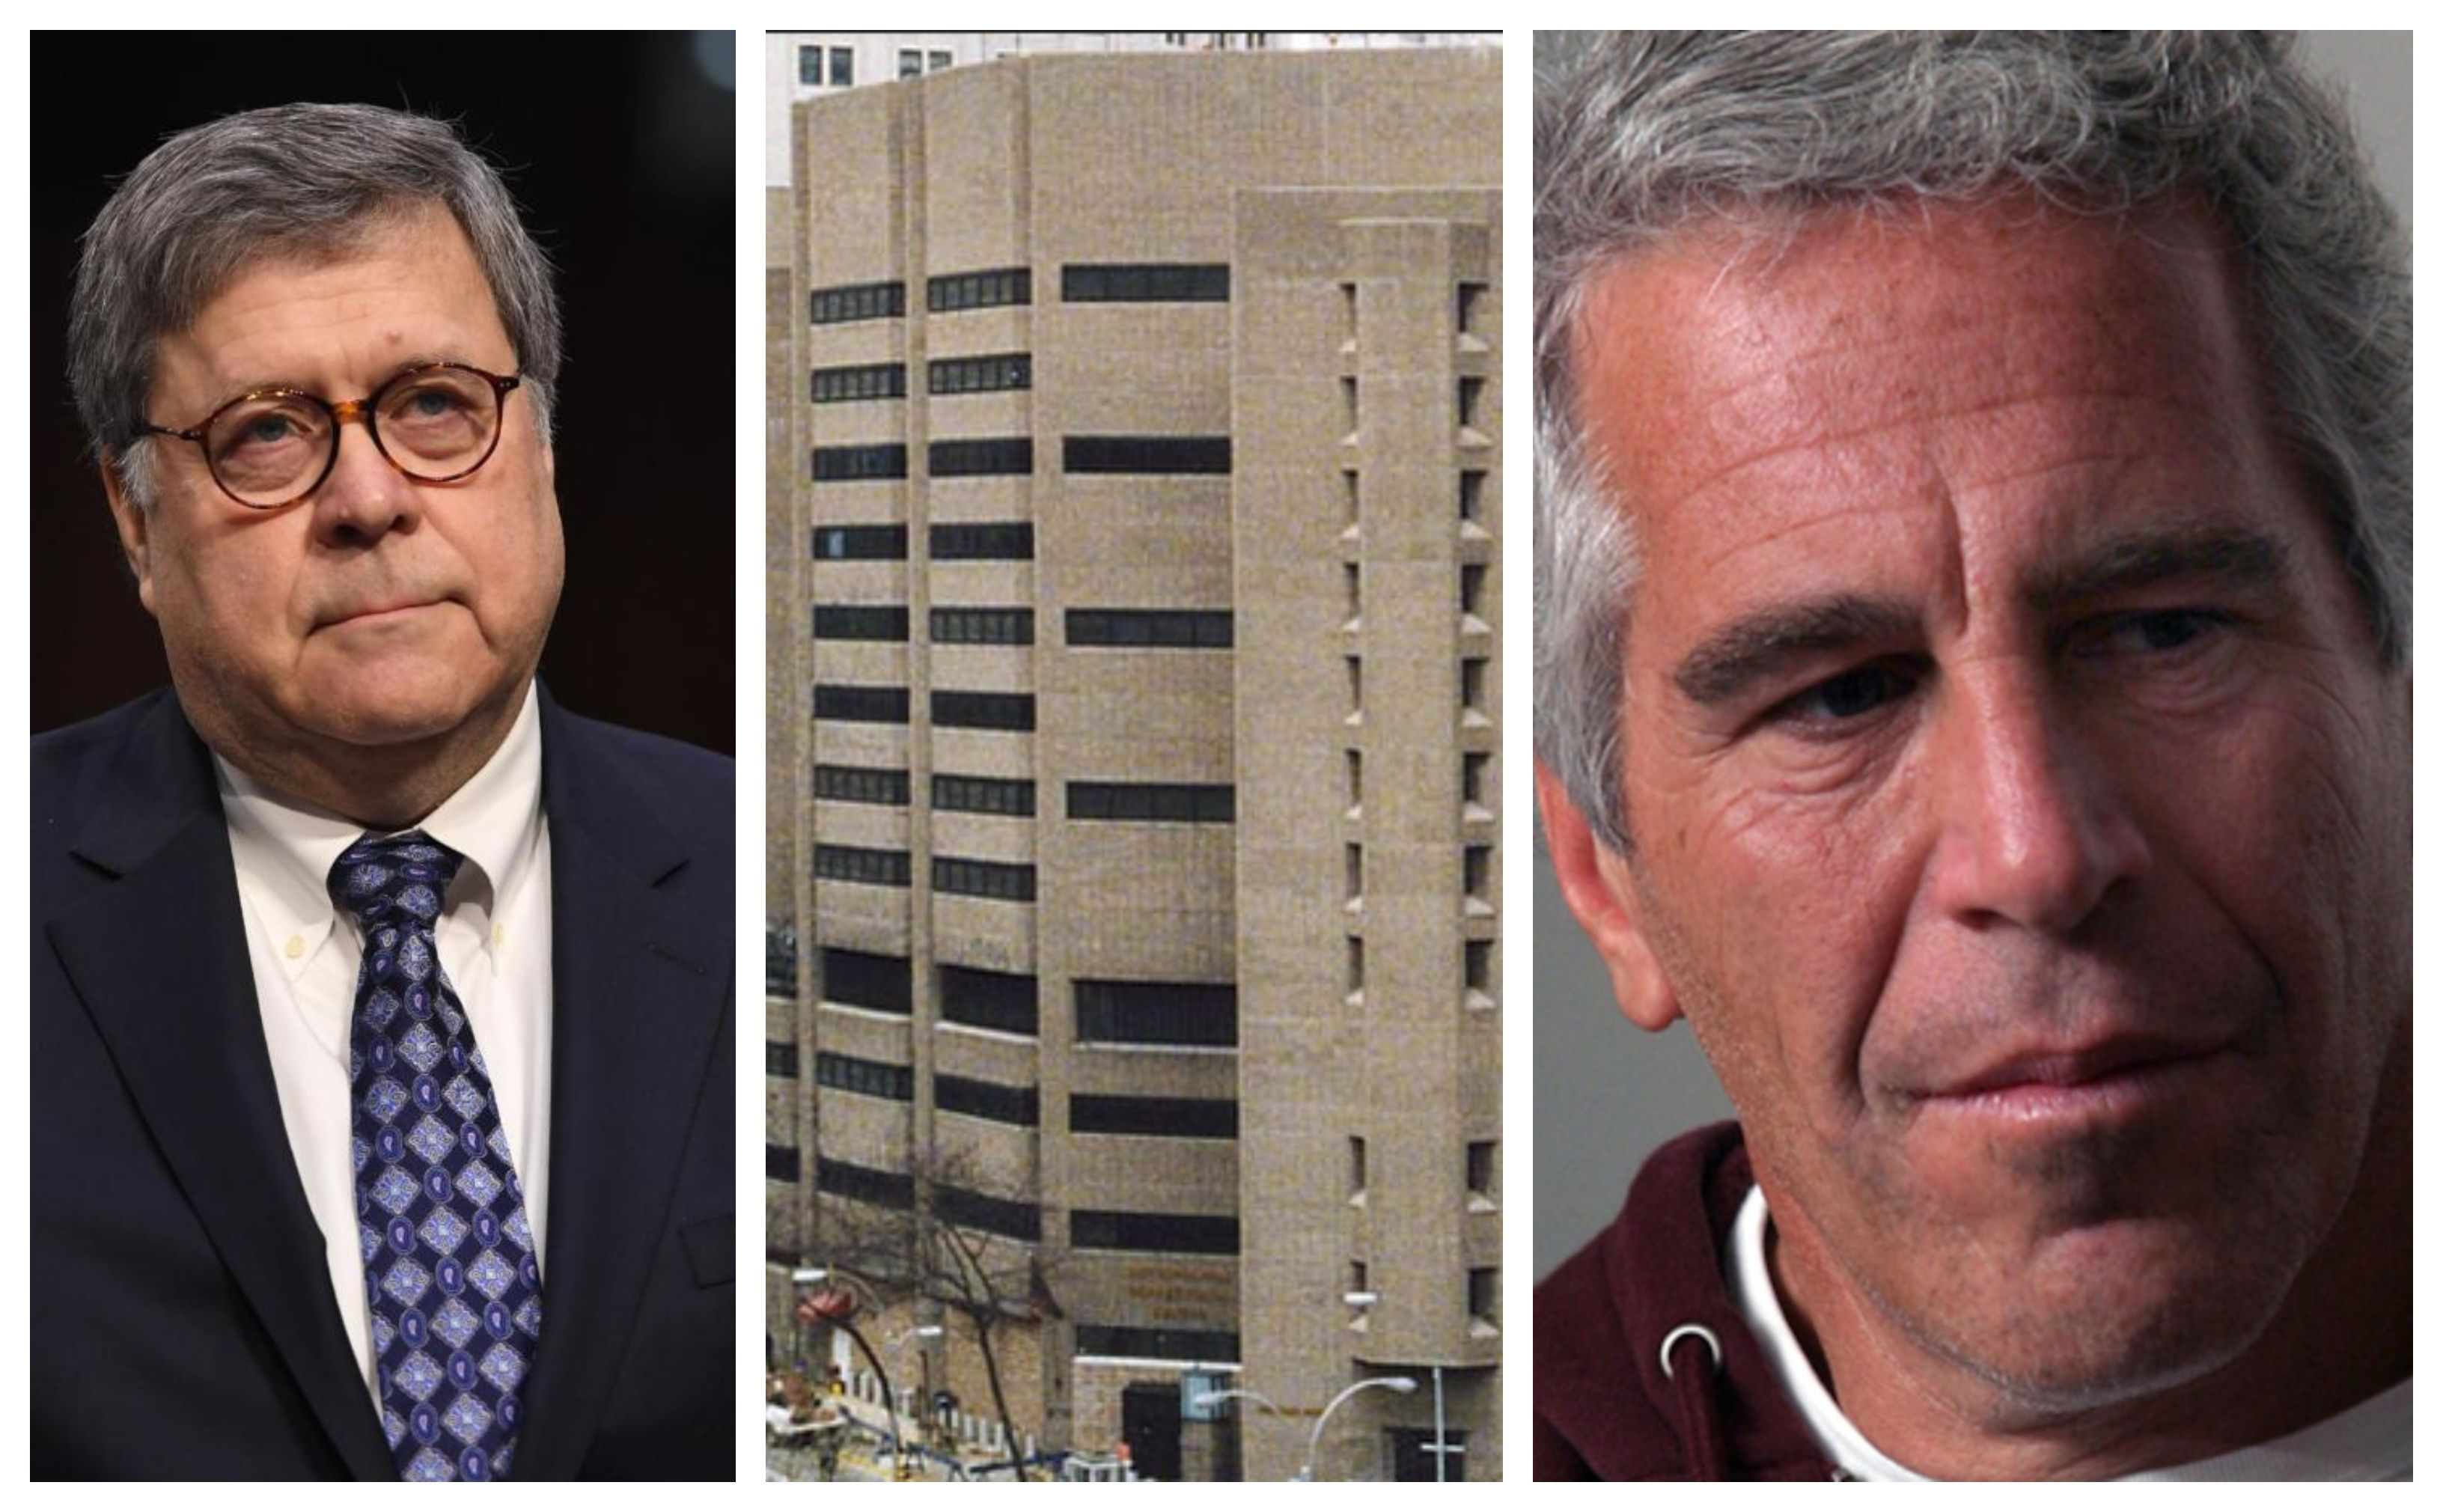 AG Barr says Security footage confirms no one entered area Epstein was jailed the night he died…